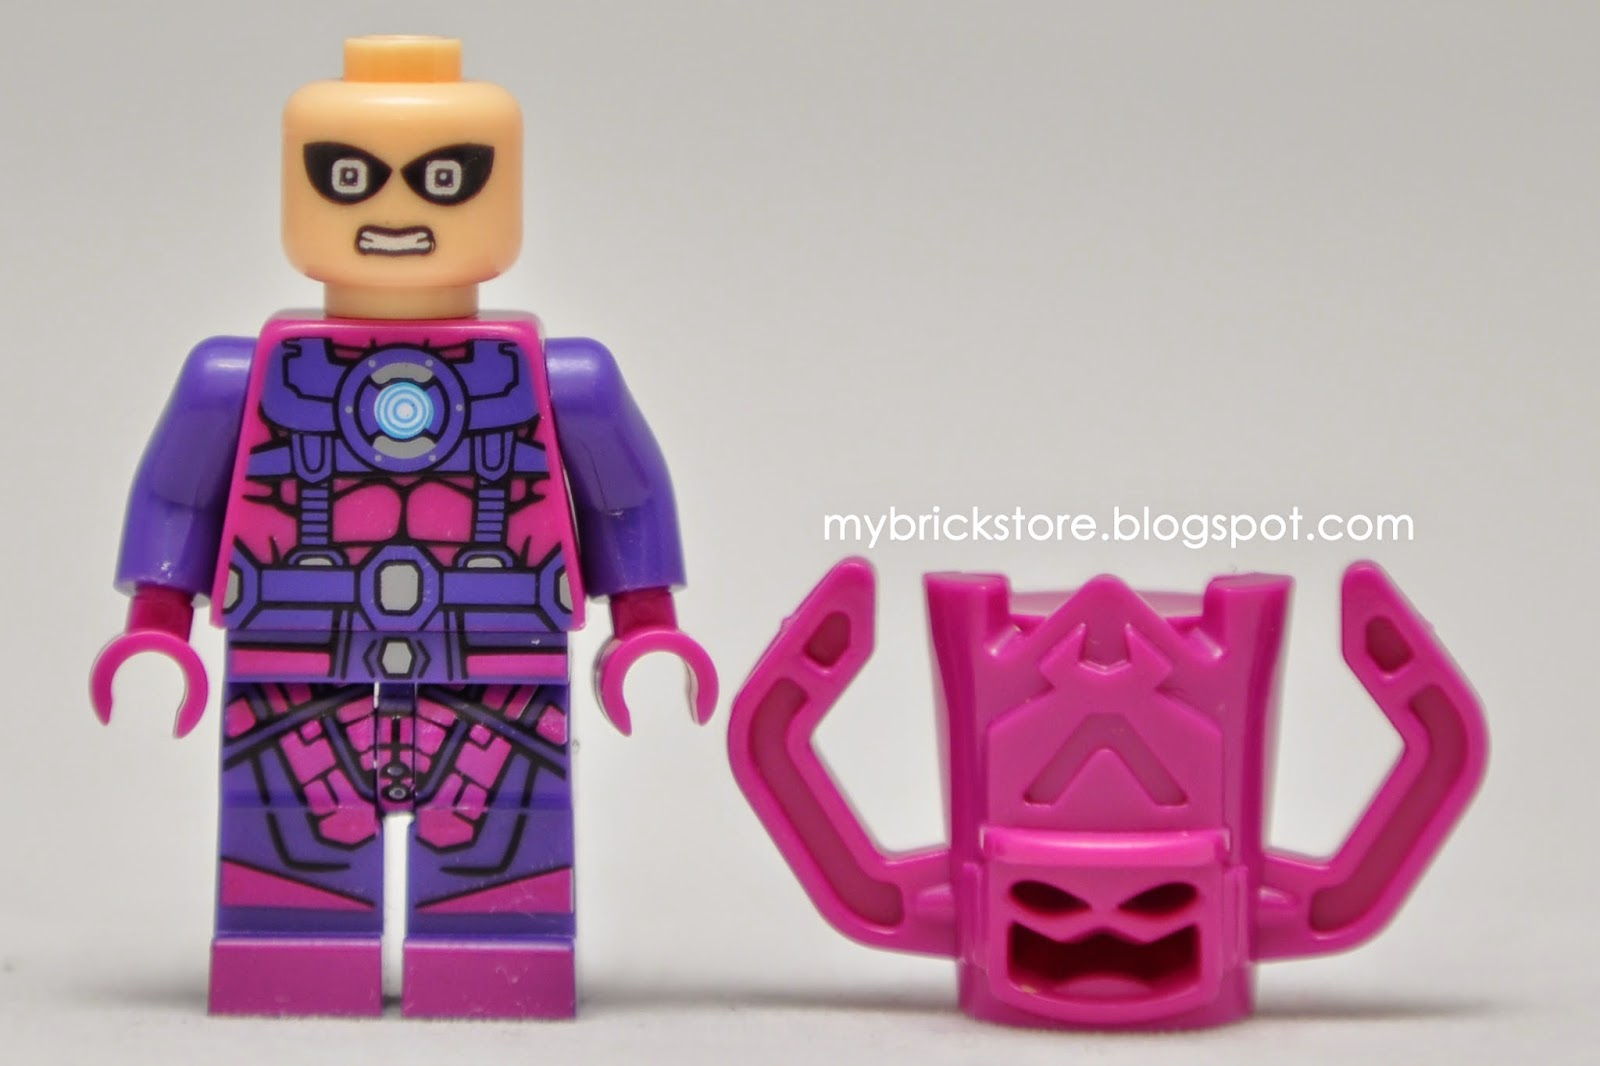 Lego Galactus Rating I would happily give 4